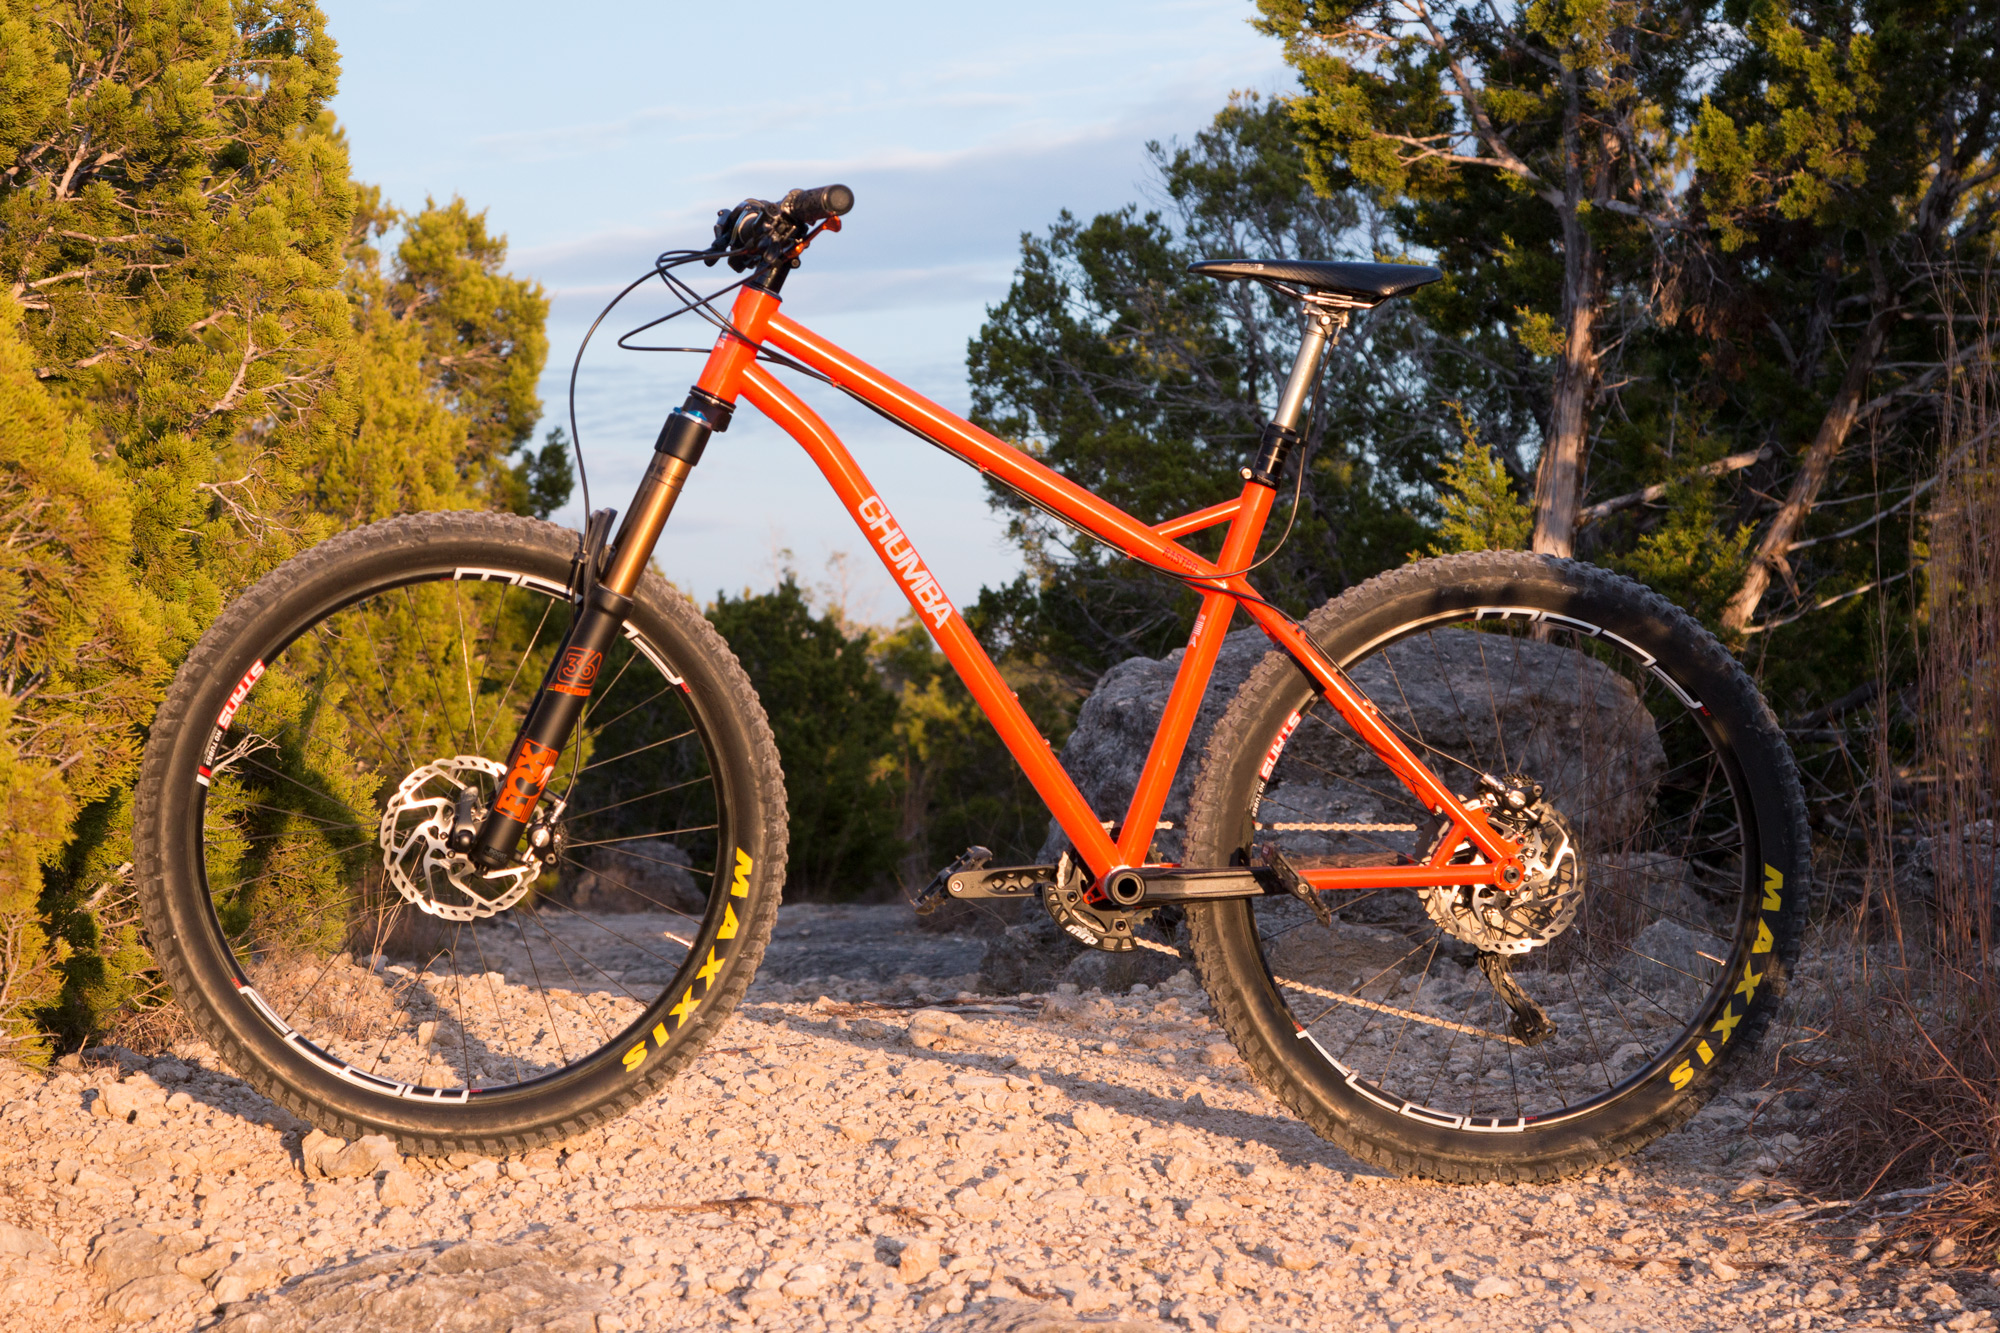 Now through Jan 1st all  RASTRO Enduro and 27plus  orders will receive a free shipping and a second set of Maxxis Rekon 27plus x 28. EXO TR tires! (a $280 value!)